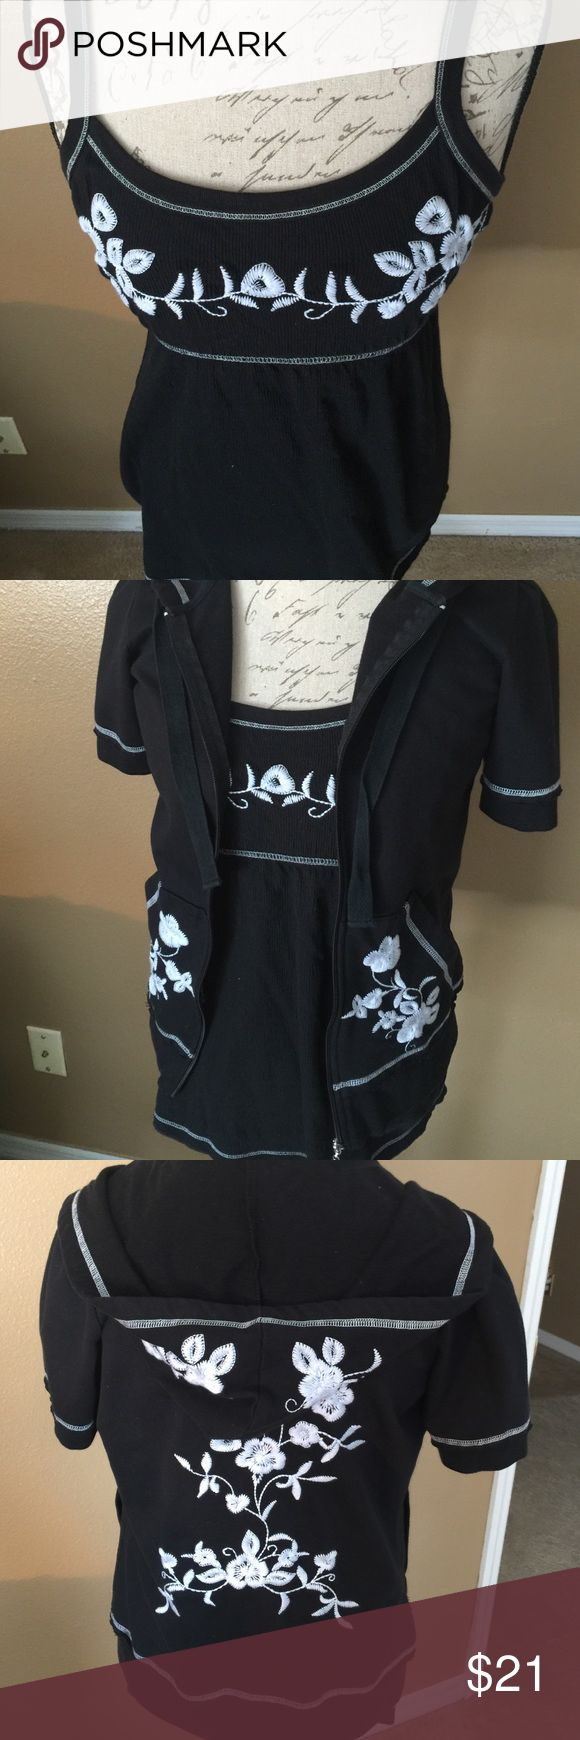 Copper Key L Black & white embroidered set jacket Never worn- Copper Key tank and jacket. Cotton/poly, tank size M, jacket L. Copper Key Jackets & Coats